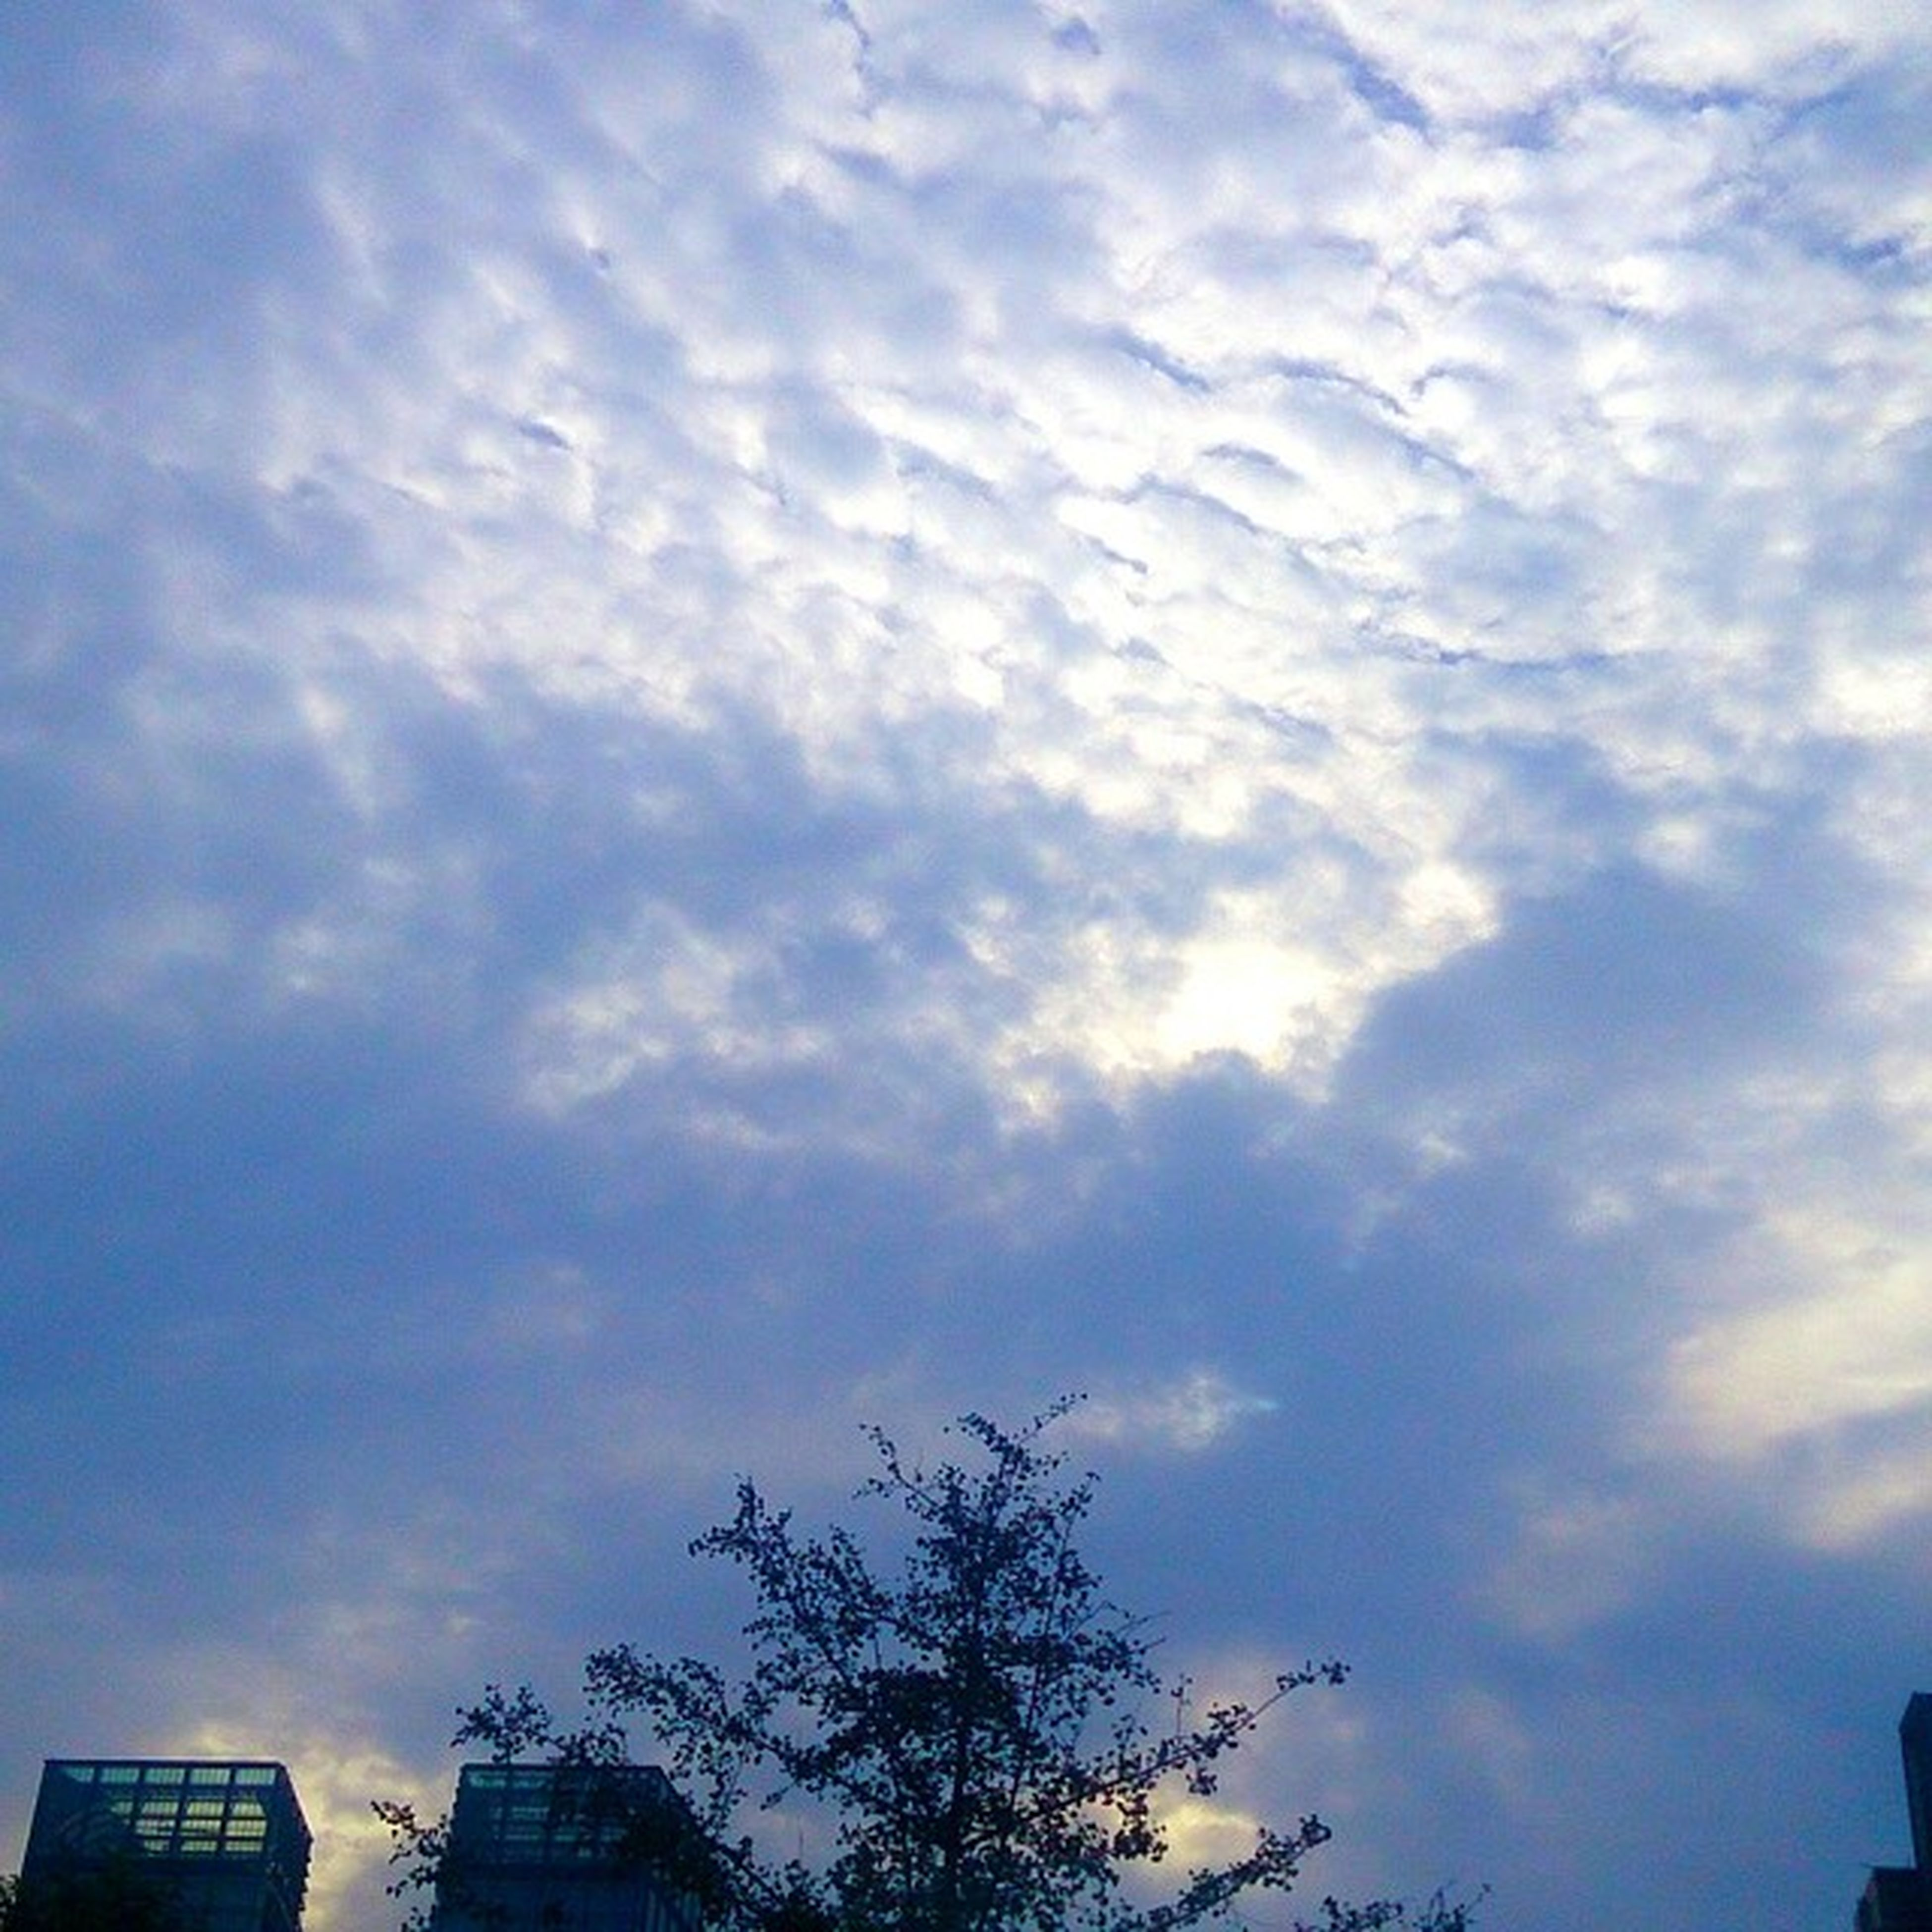 sky, low angle view, cloud - sky, cloudy, building exterior, tree, cloud, built structure, architecture, high section, nature, outdoors, silhouette, beauty in nature, blue, no people, weather, day, scenics, building